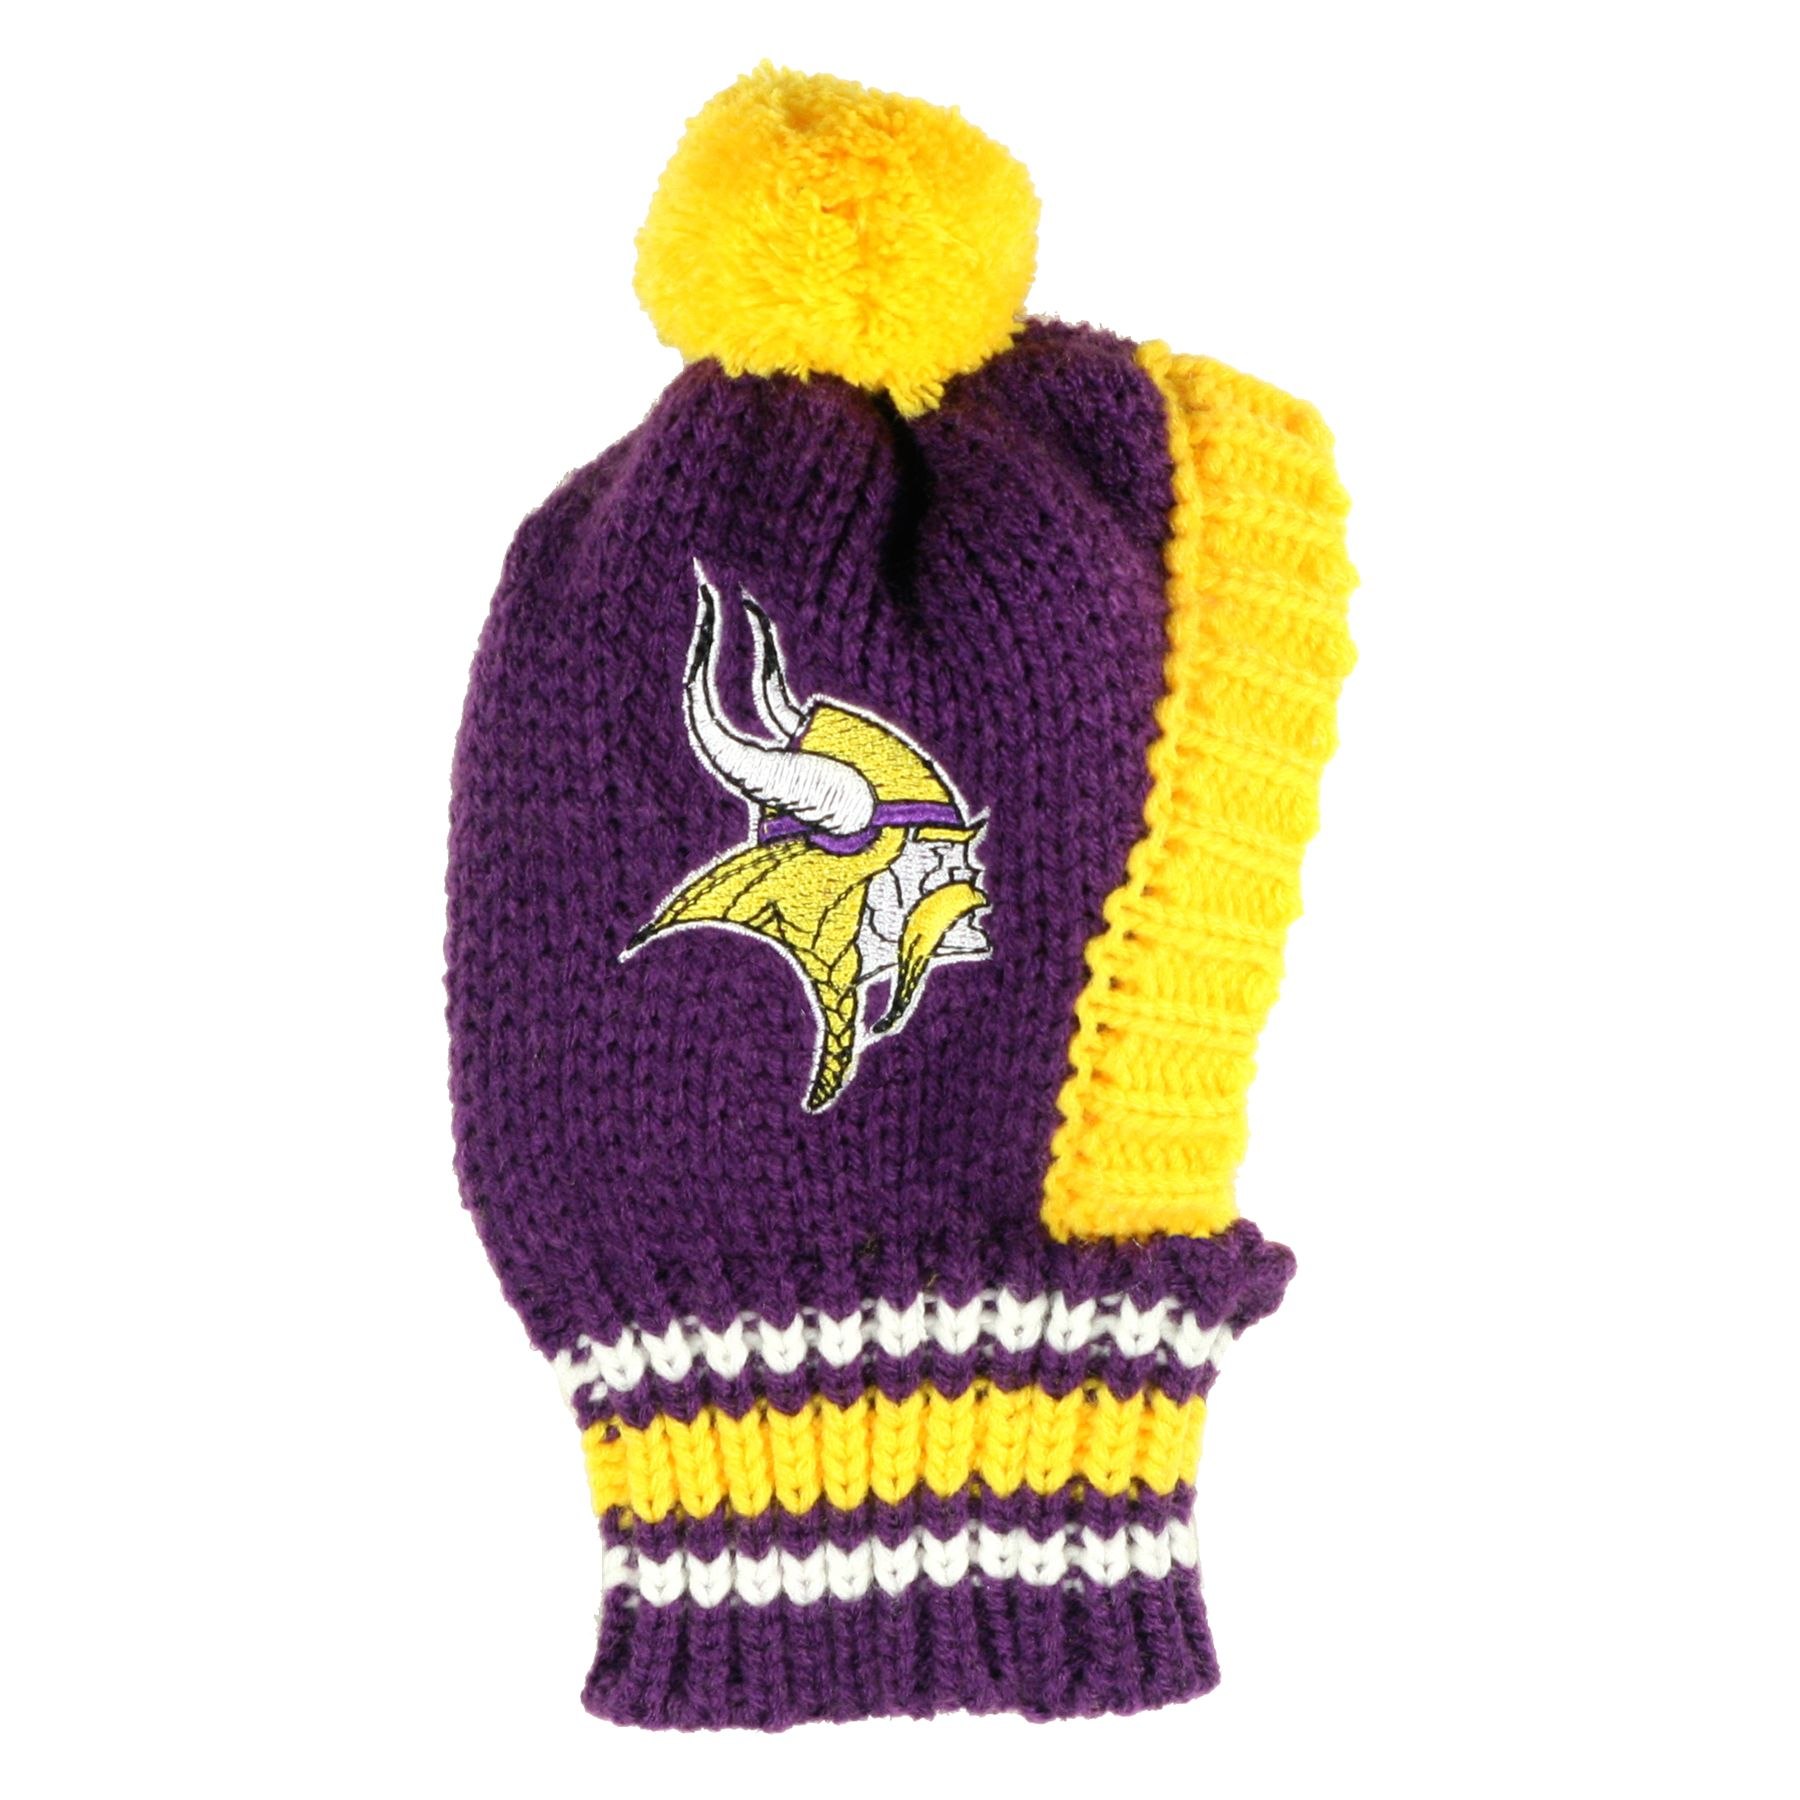 Minnesota Vikings NFL Knit Hat size: Small, Hip Doggie photo